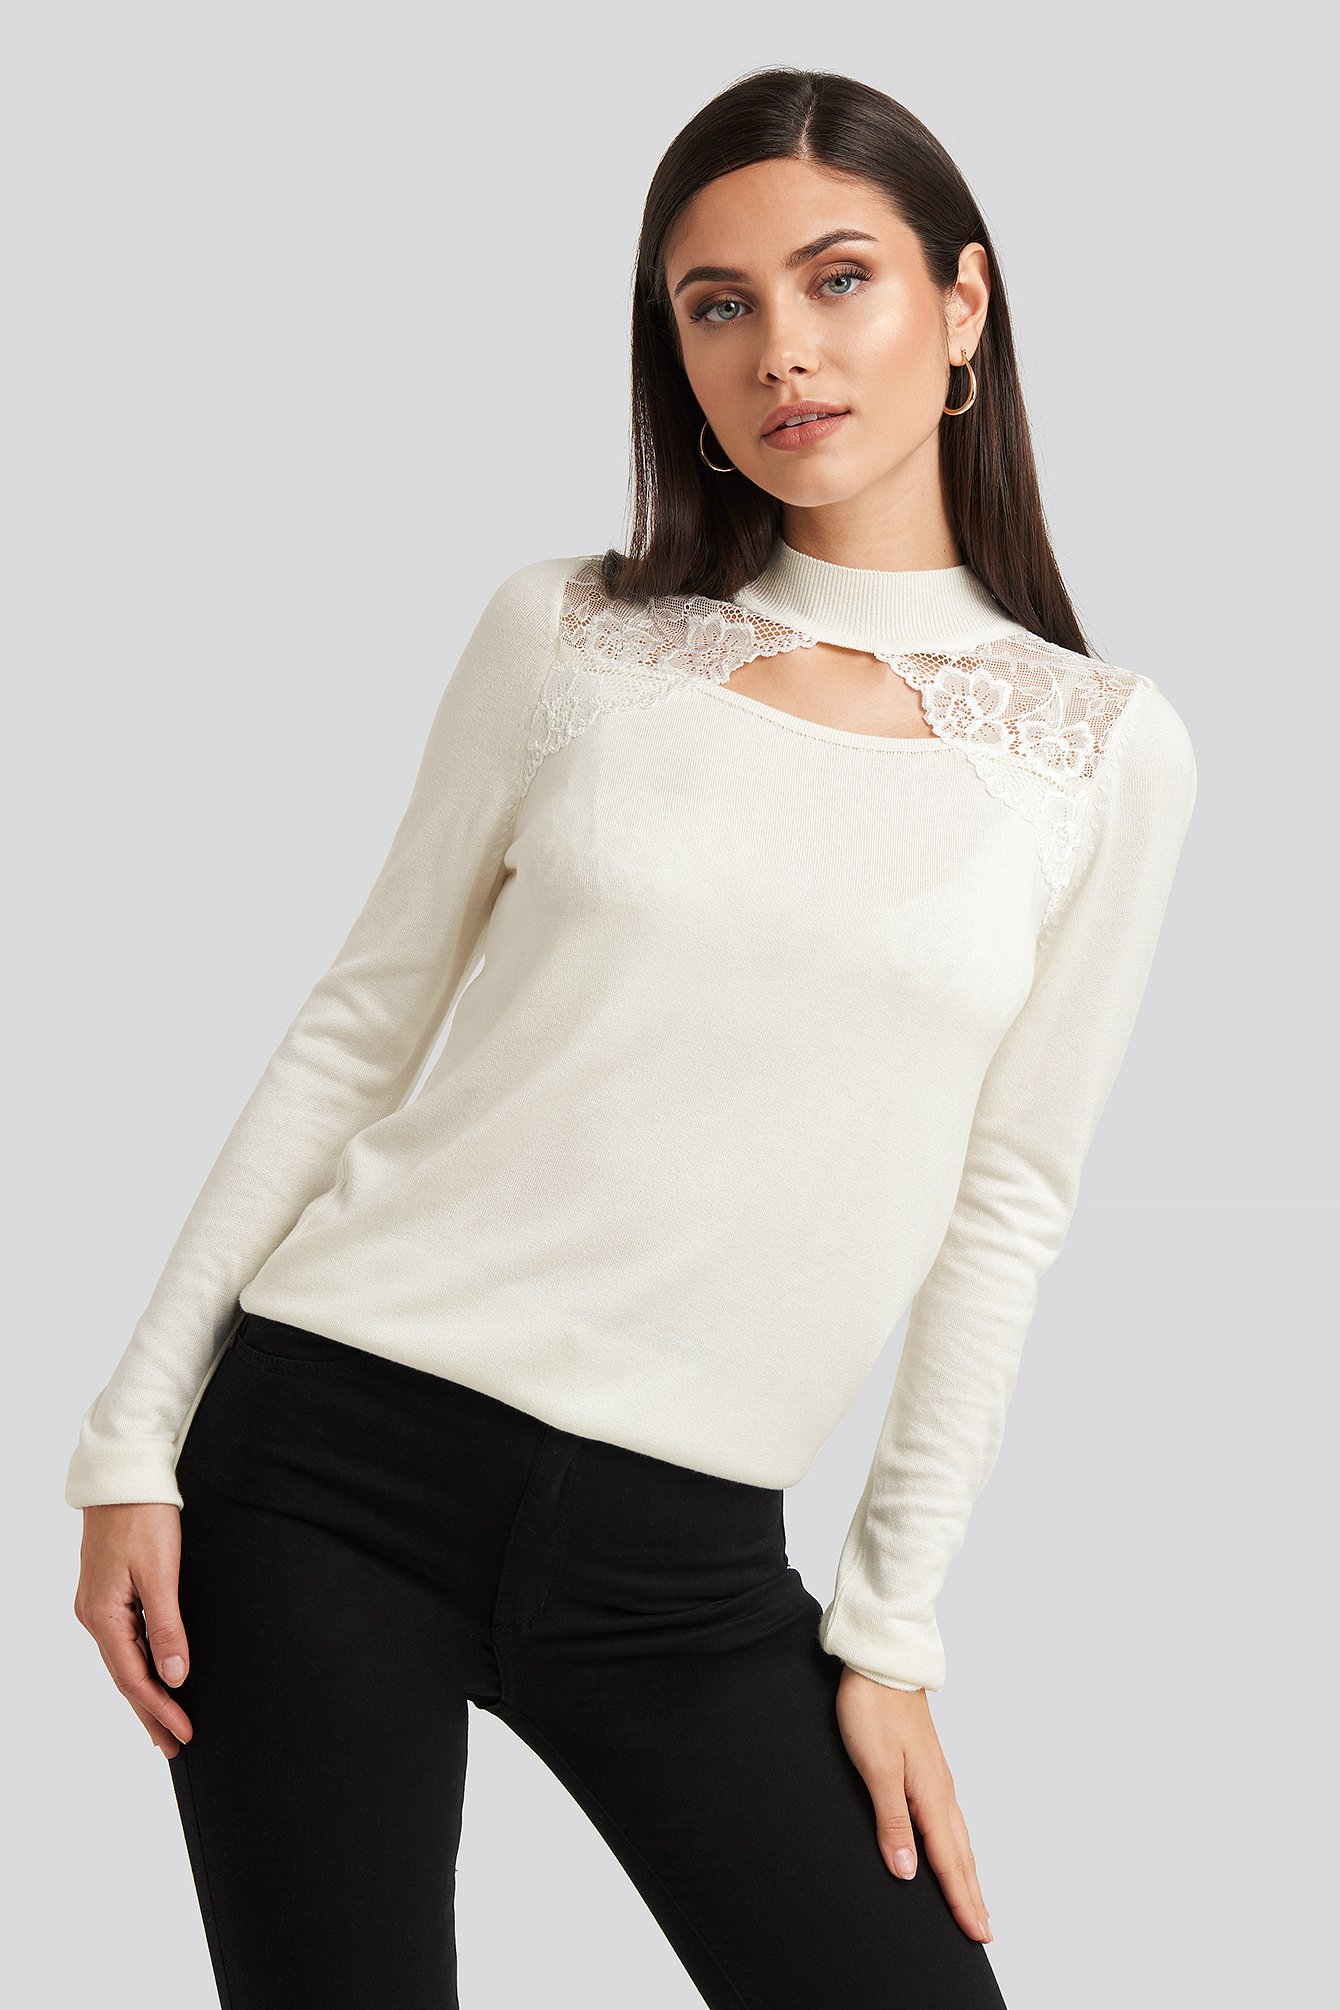 Trendyol High Neck Lace Detail Top - White